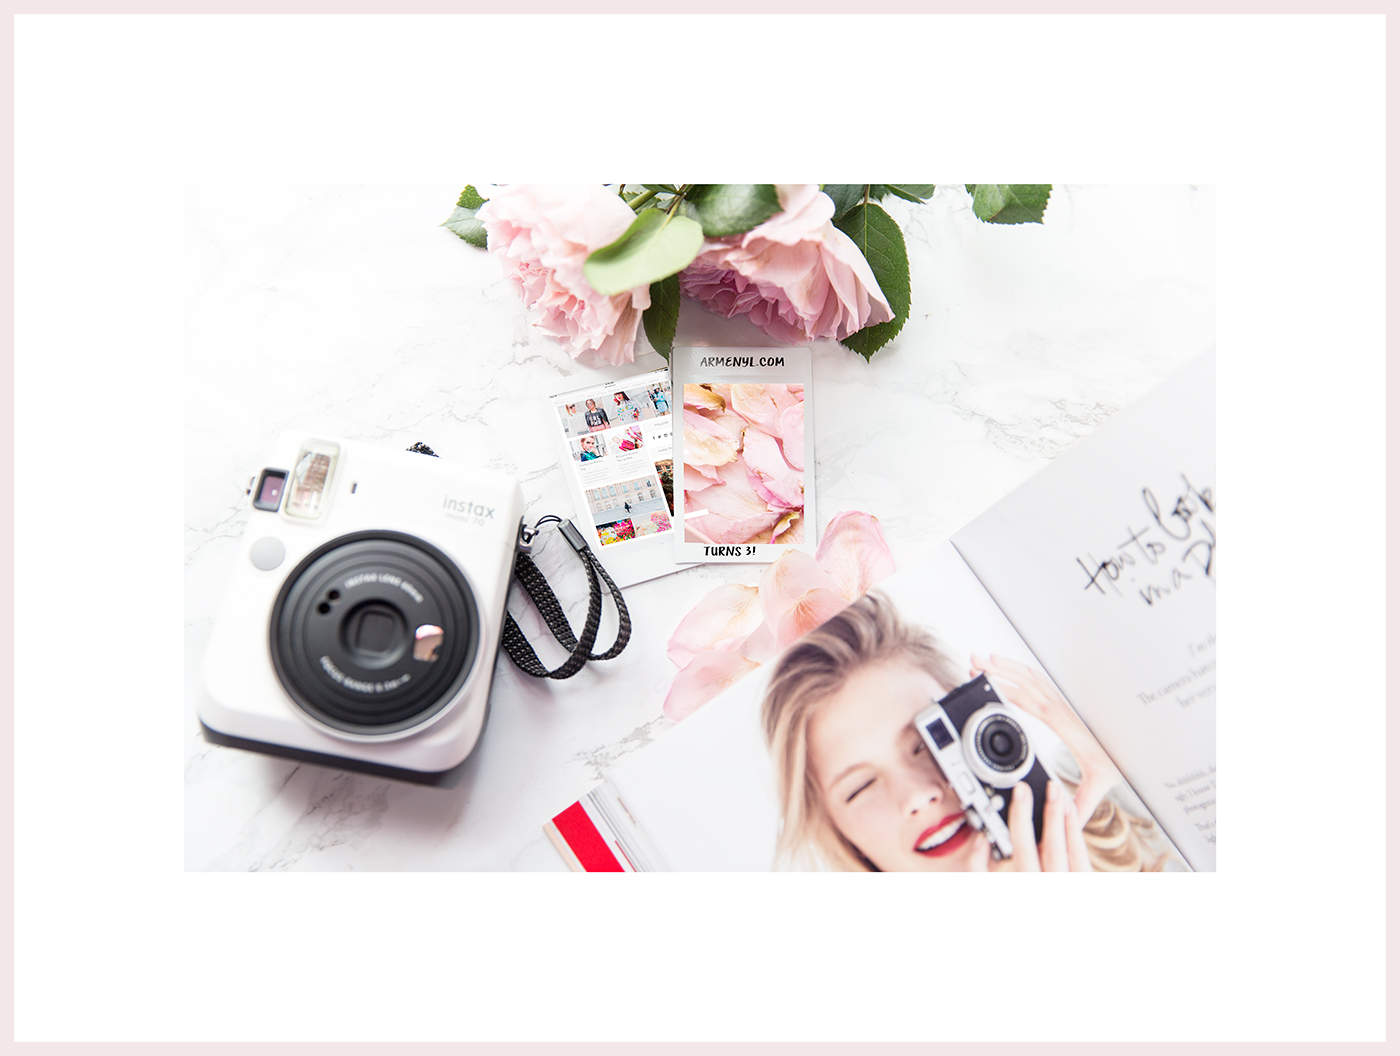 photography-by-armenyl-com-pink-roses-flatlay